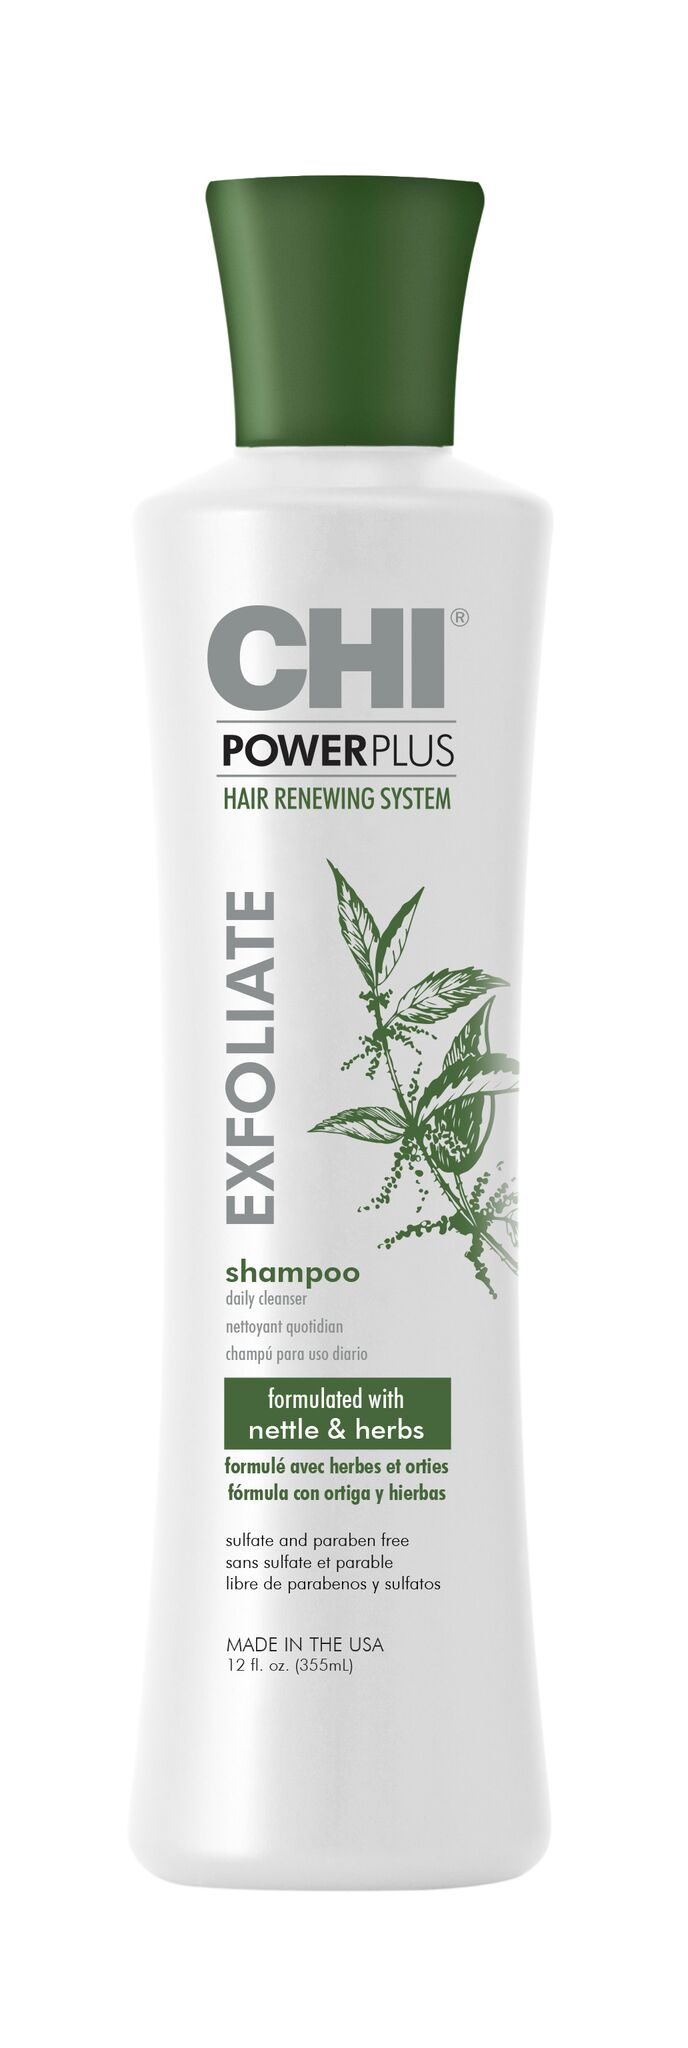 CHI Power Plus Line Shampoo 12oz preview - Podstrona produktu (przykład)